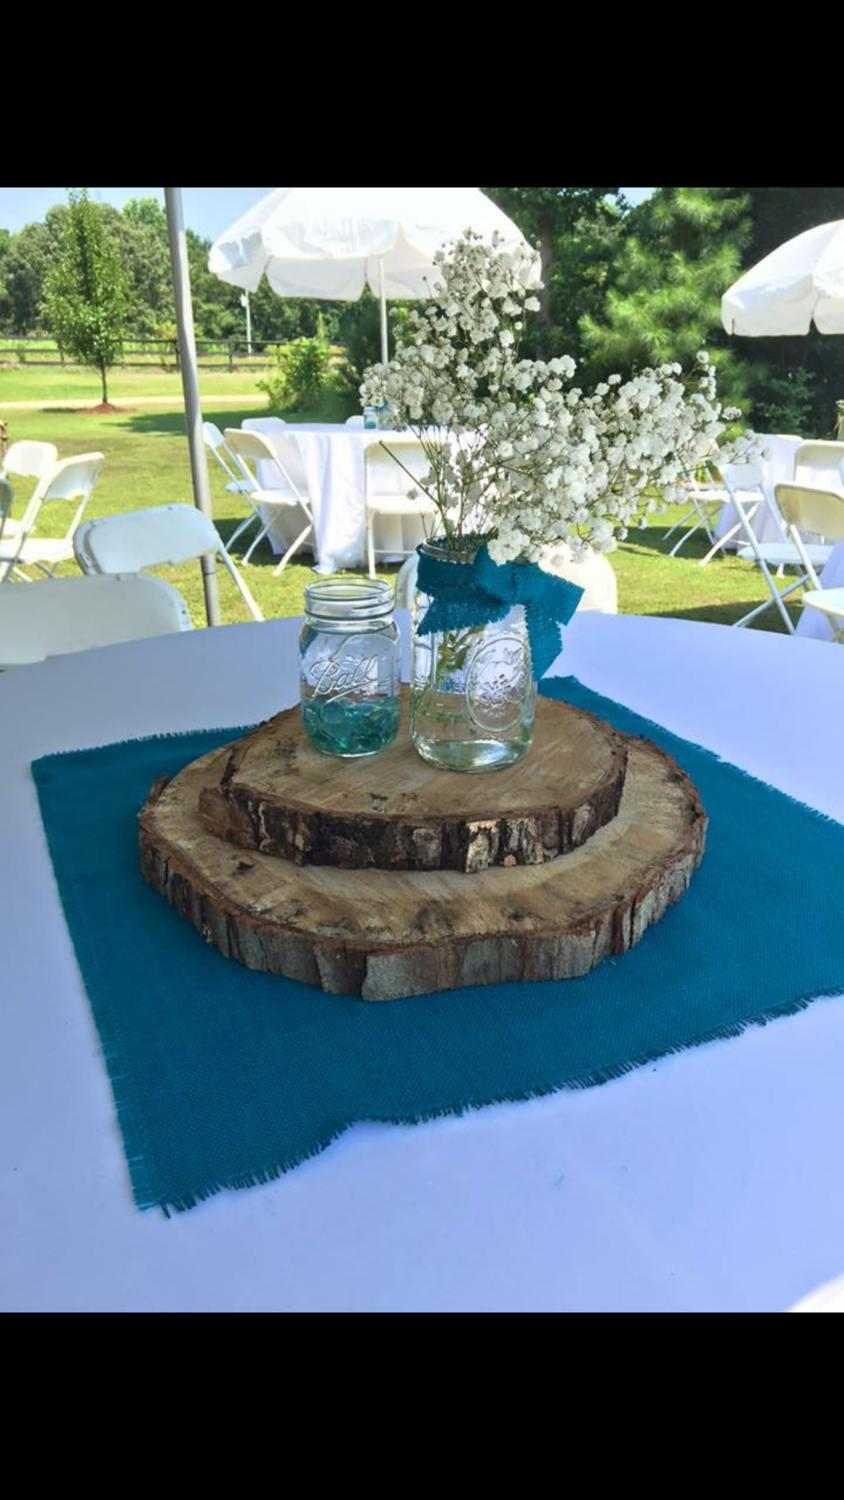 "Wedding - Colored Burlap Table Squares 12"" up to 18"" Burlap Centerpiece Burlap Wedding Decor Small Burlap Overlays Rustic Wedding Tables"